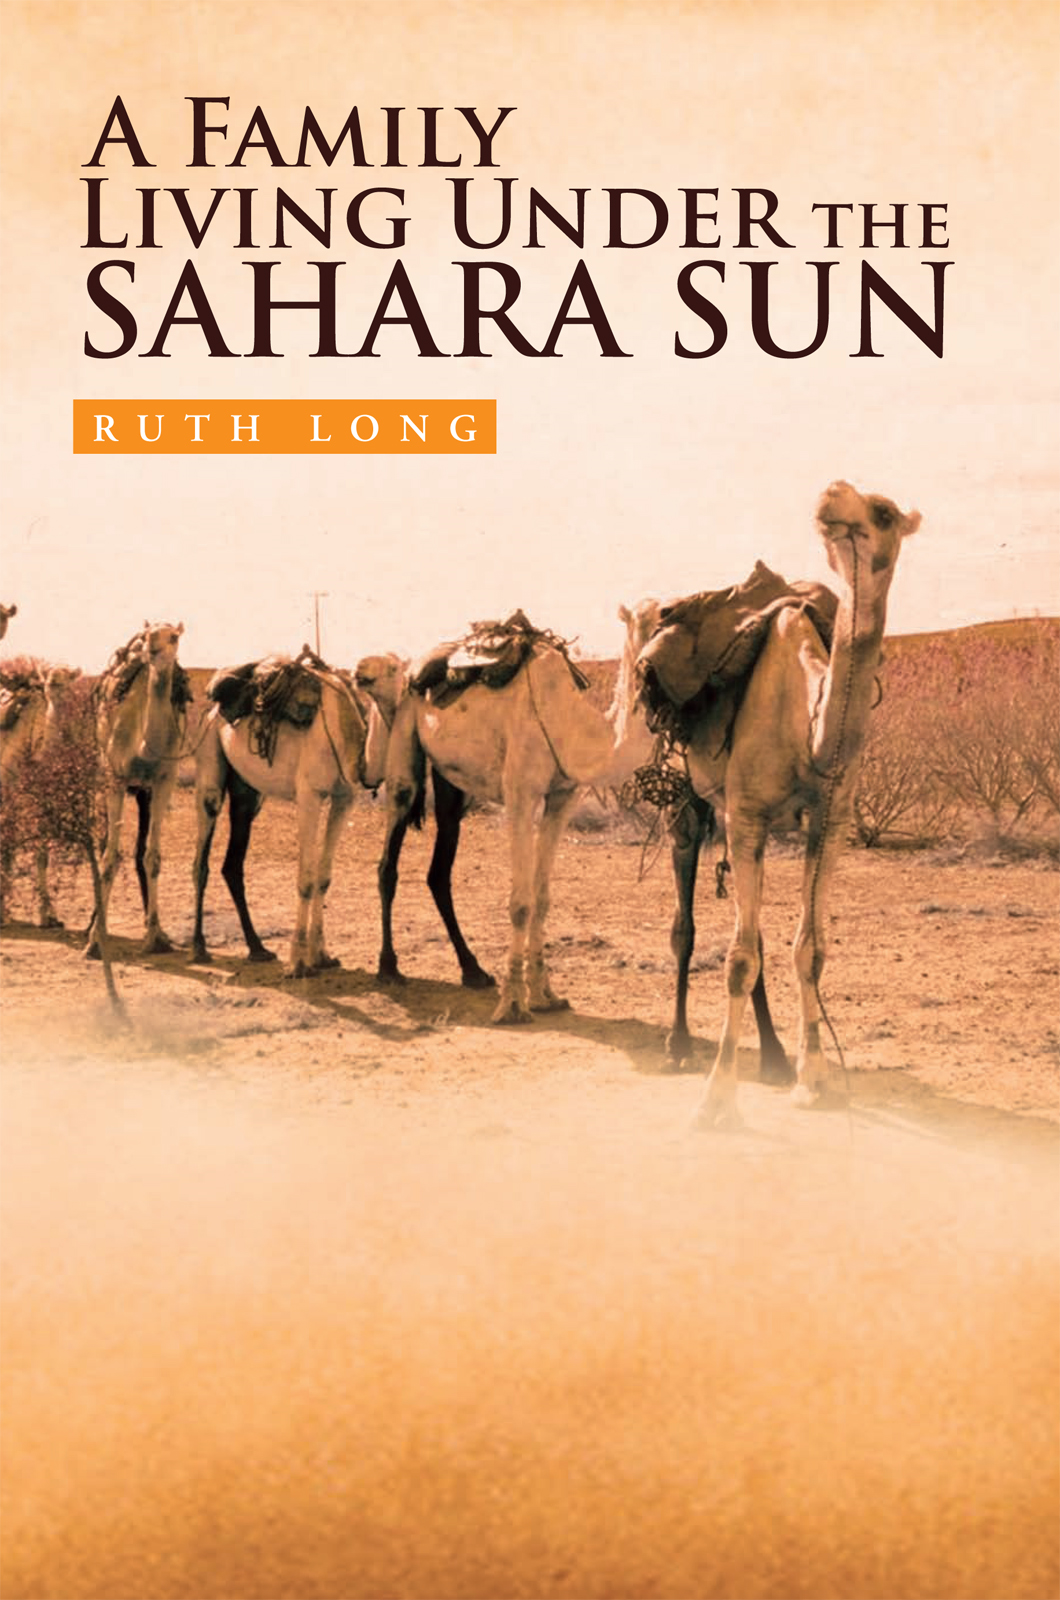 A Family Living Under the Sahara Sun